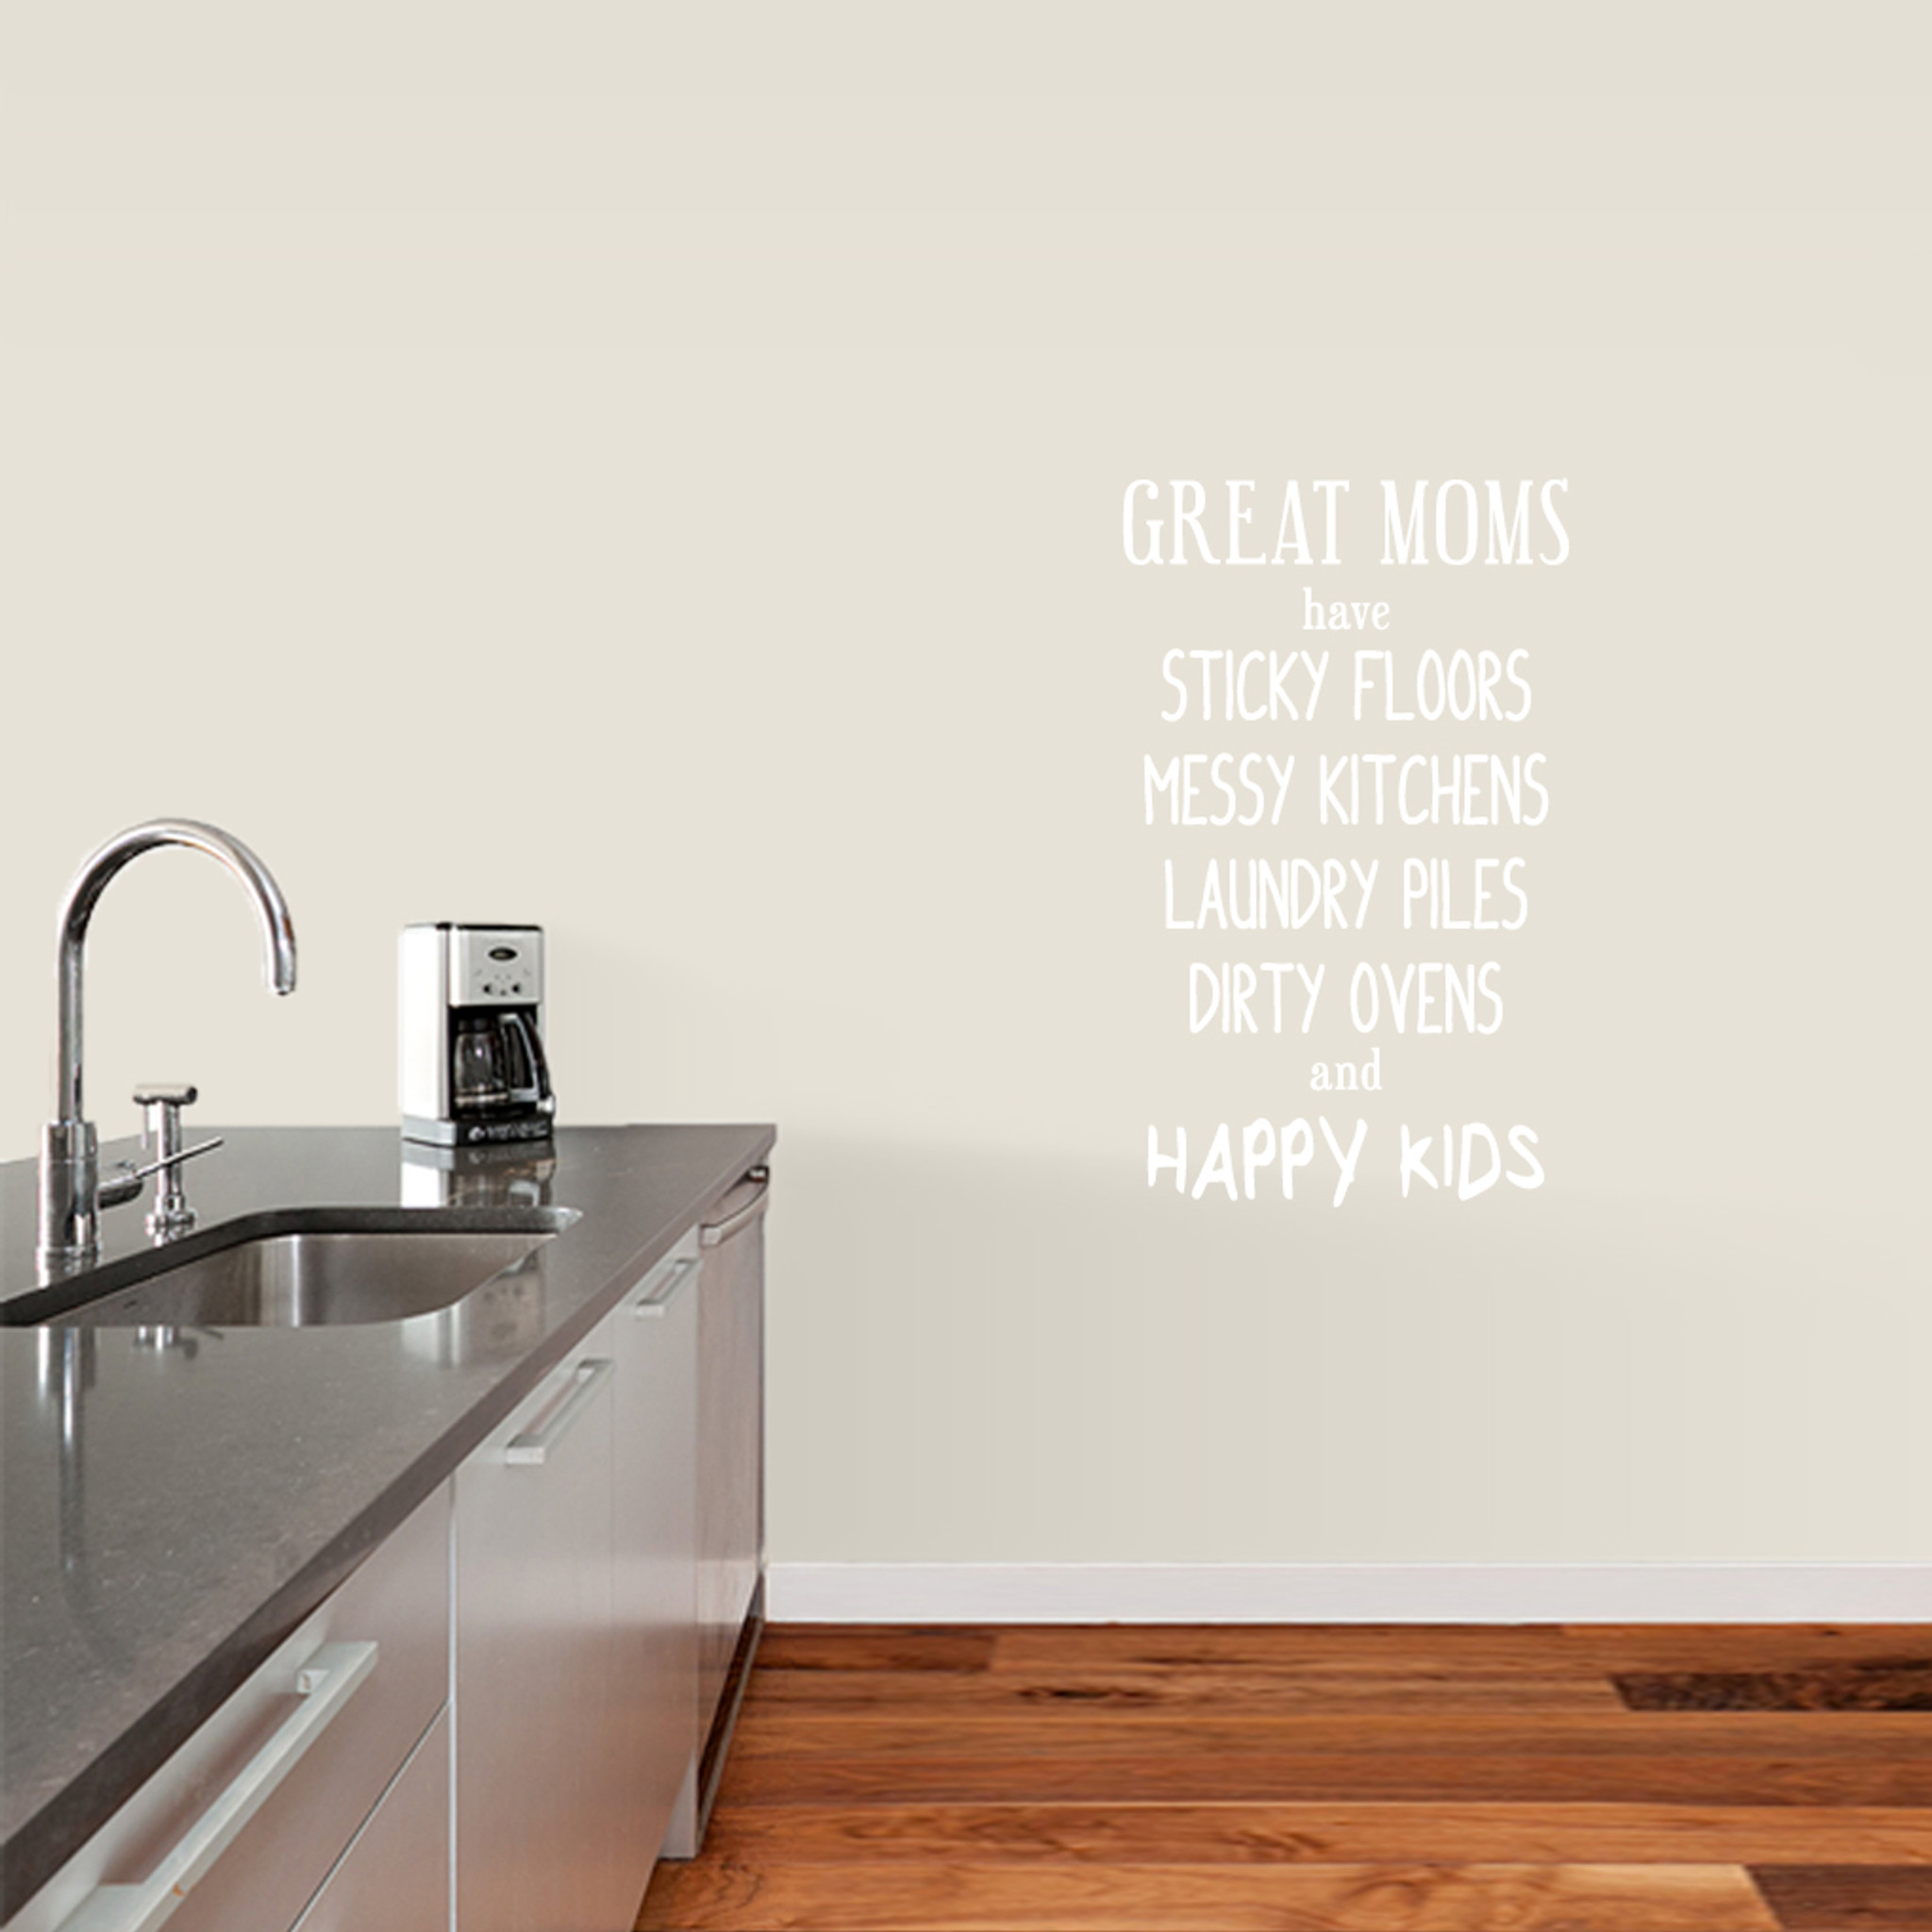 Good Moms Have Sticky Floors Quote: Great Moms Have Sticky Floors Wall Decals Wall Decor Stickers